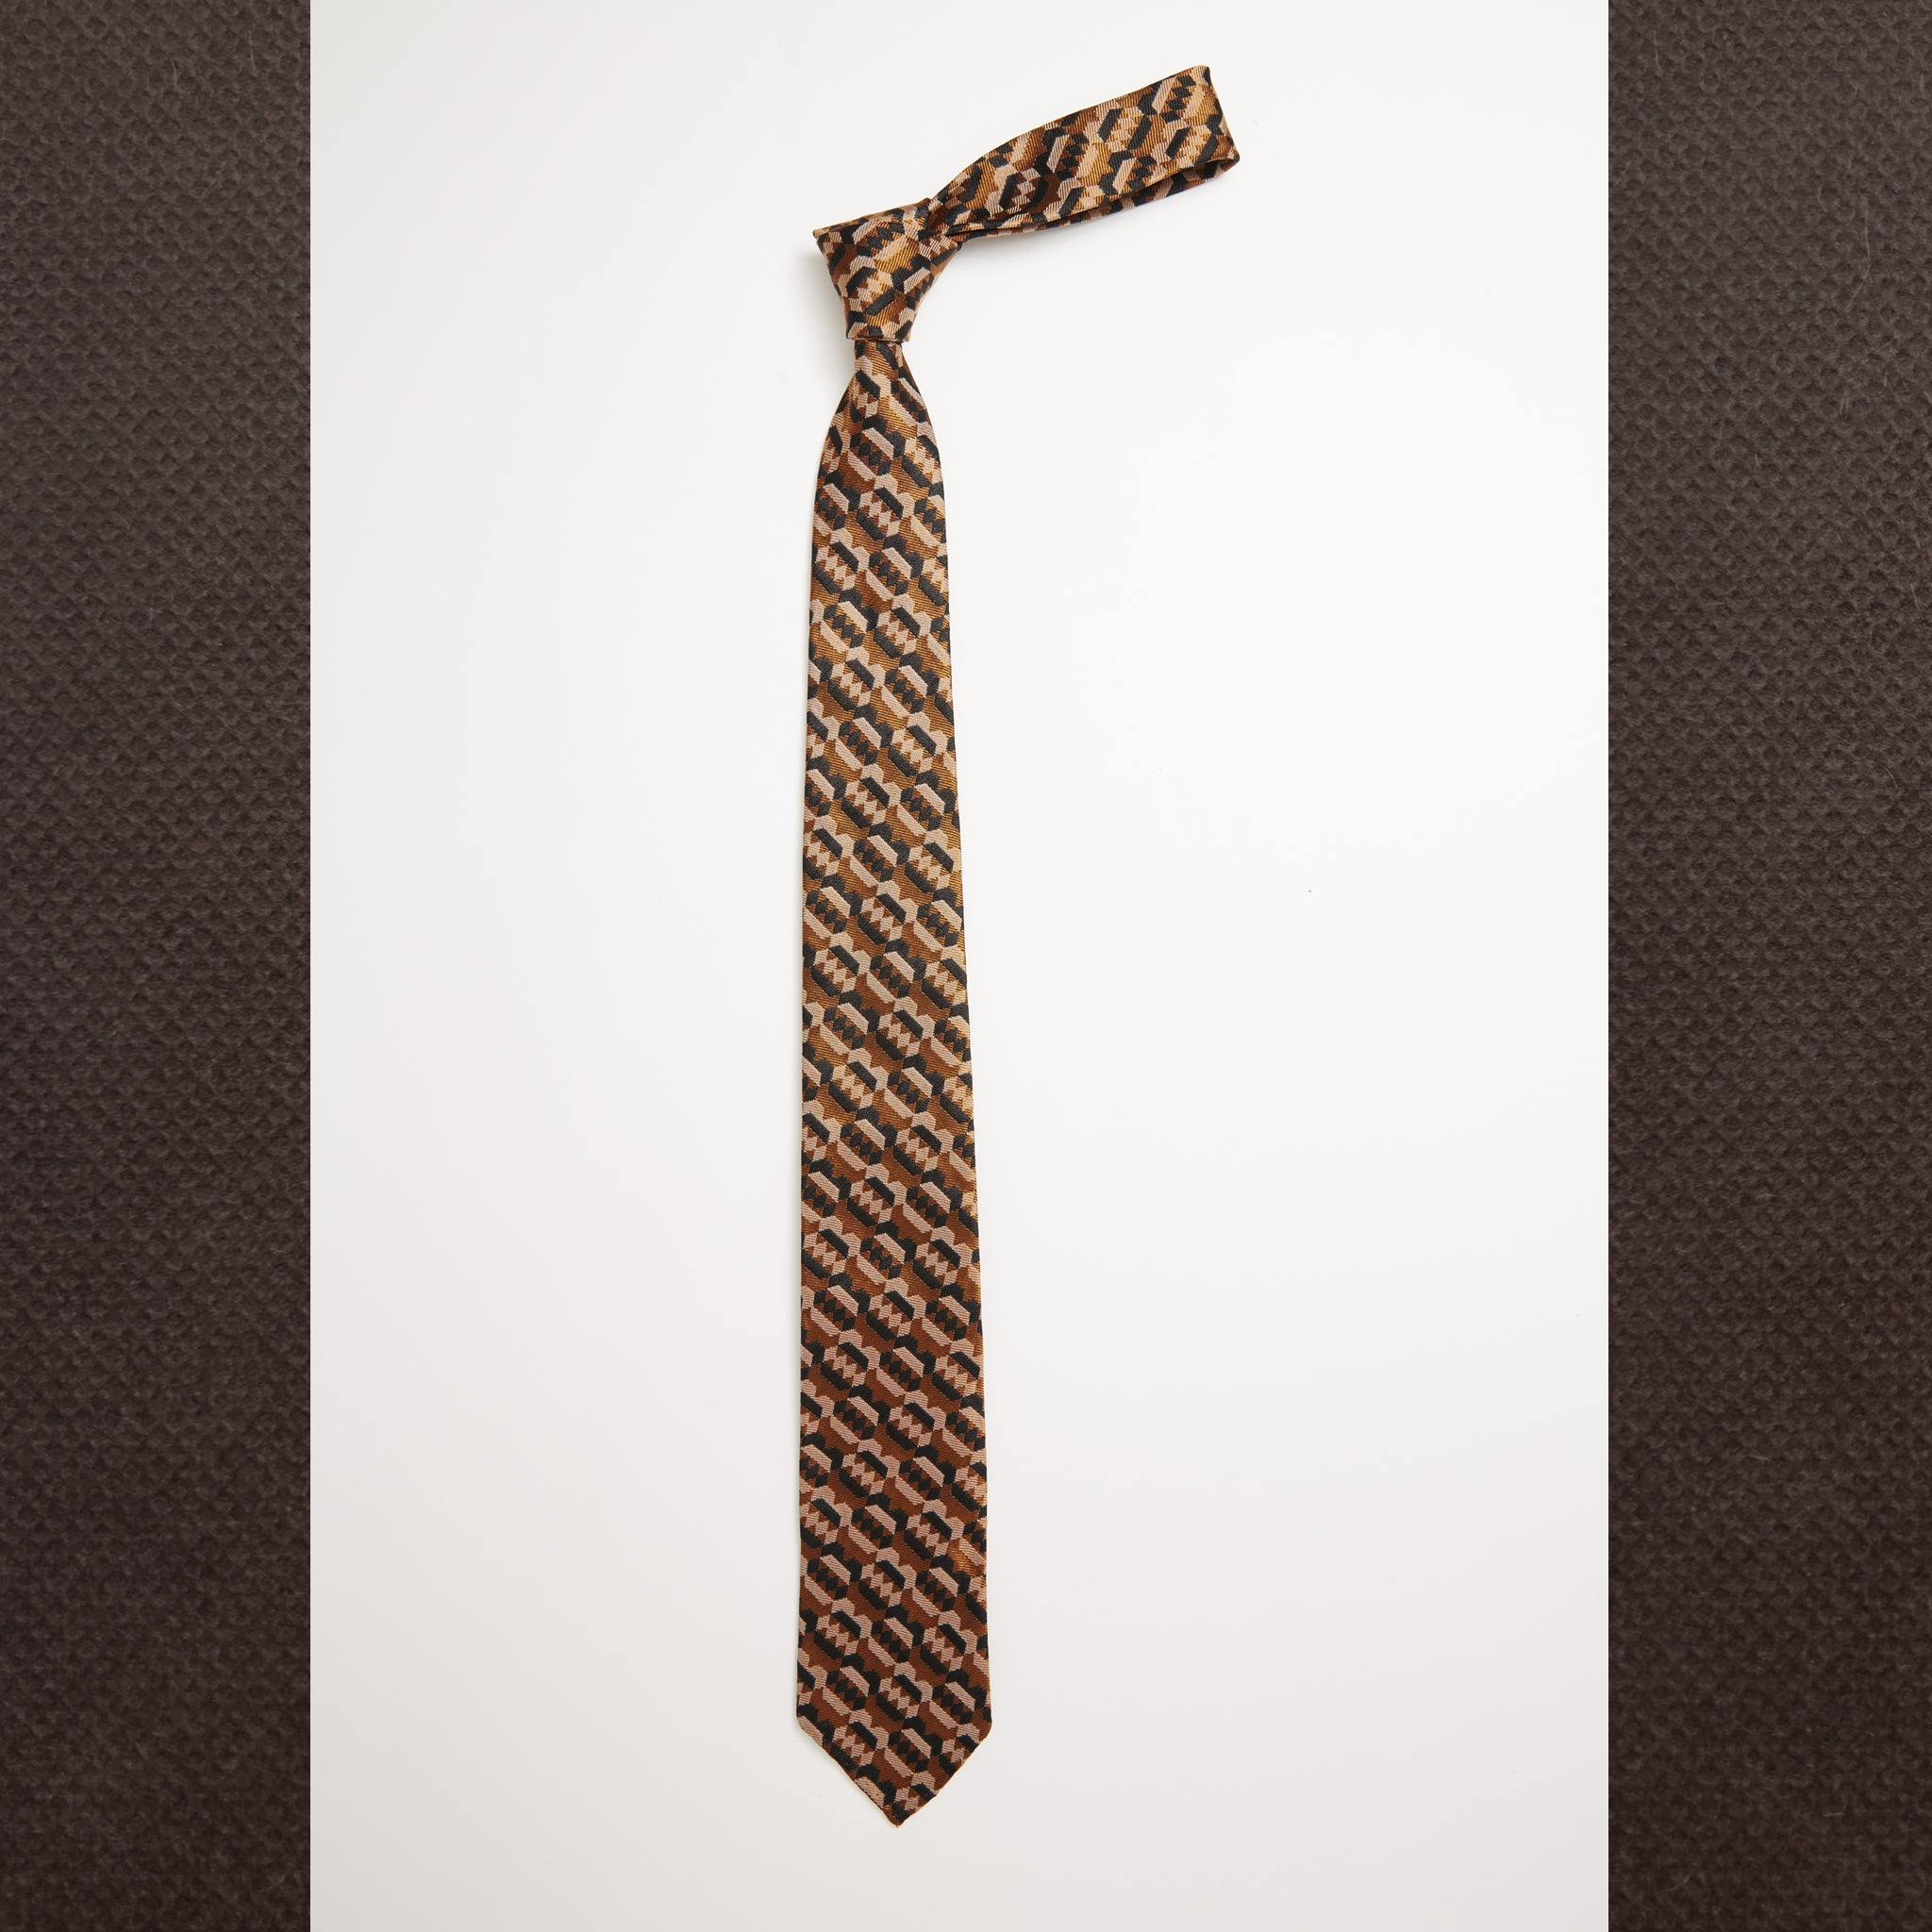 Copper Ink Drawn Tie